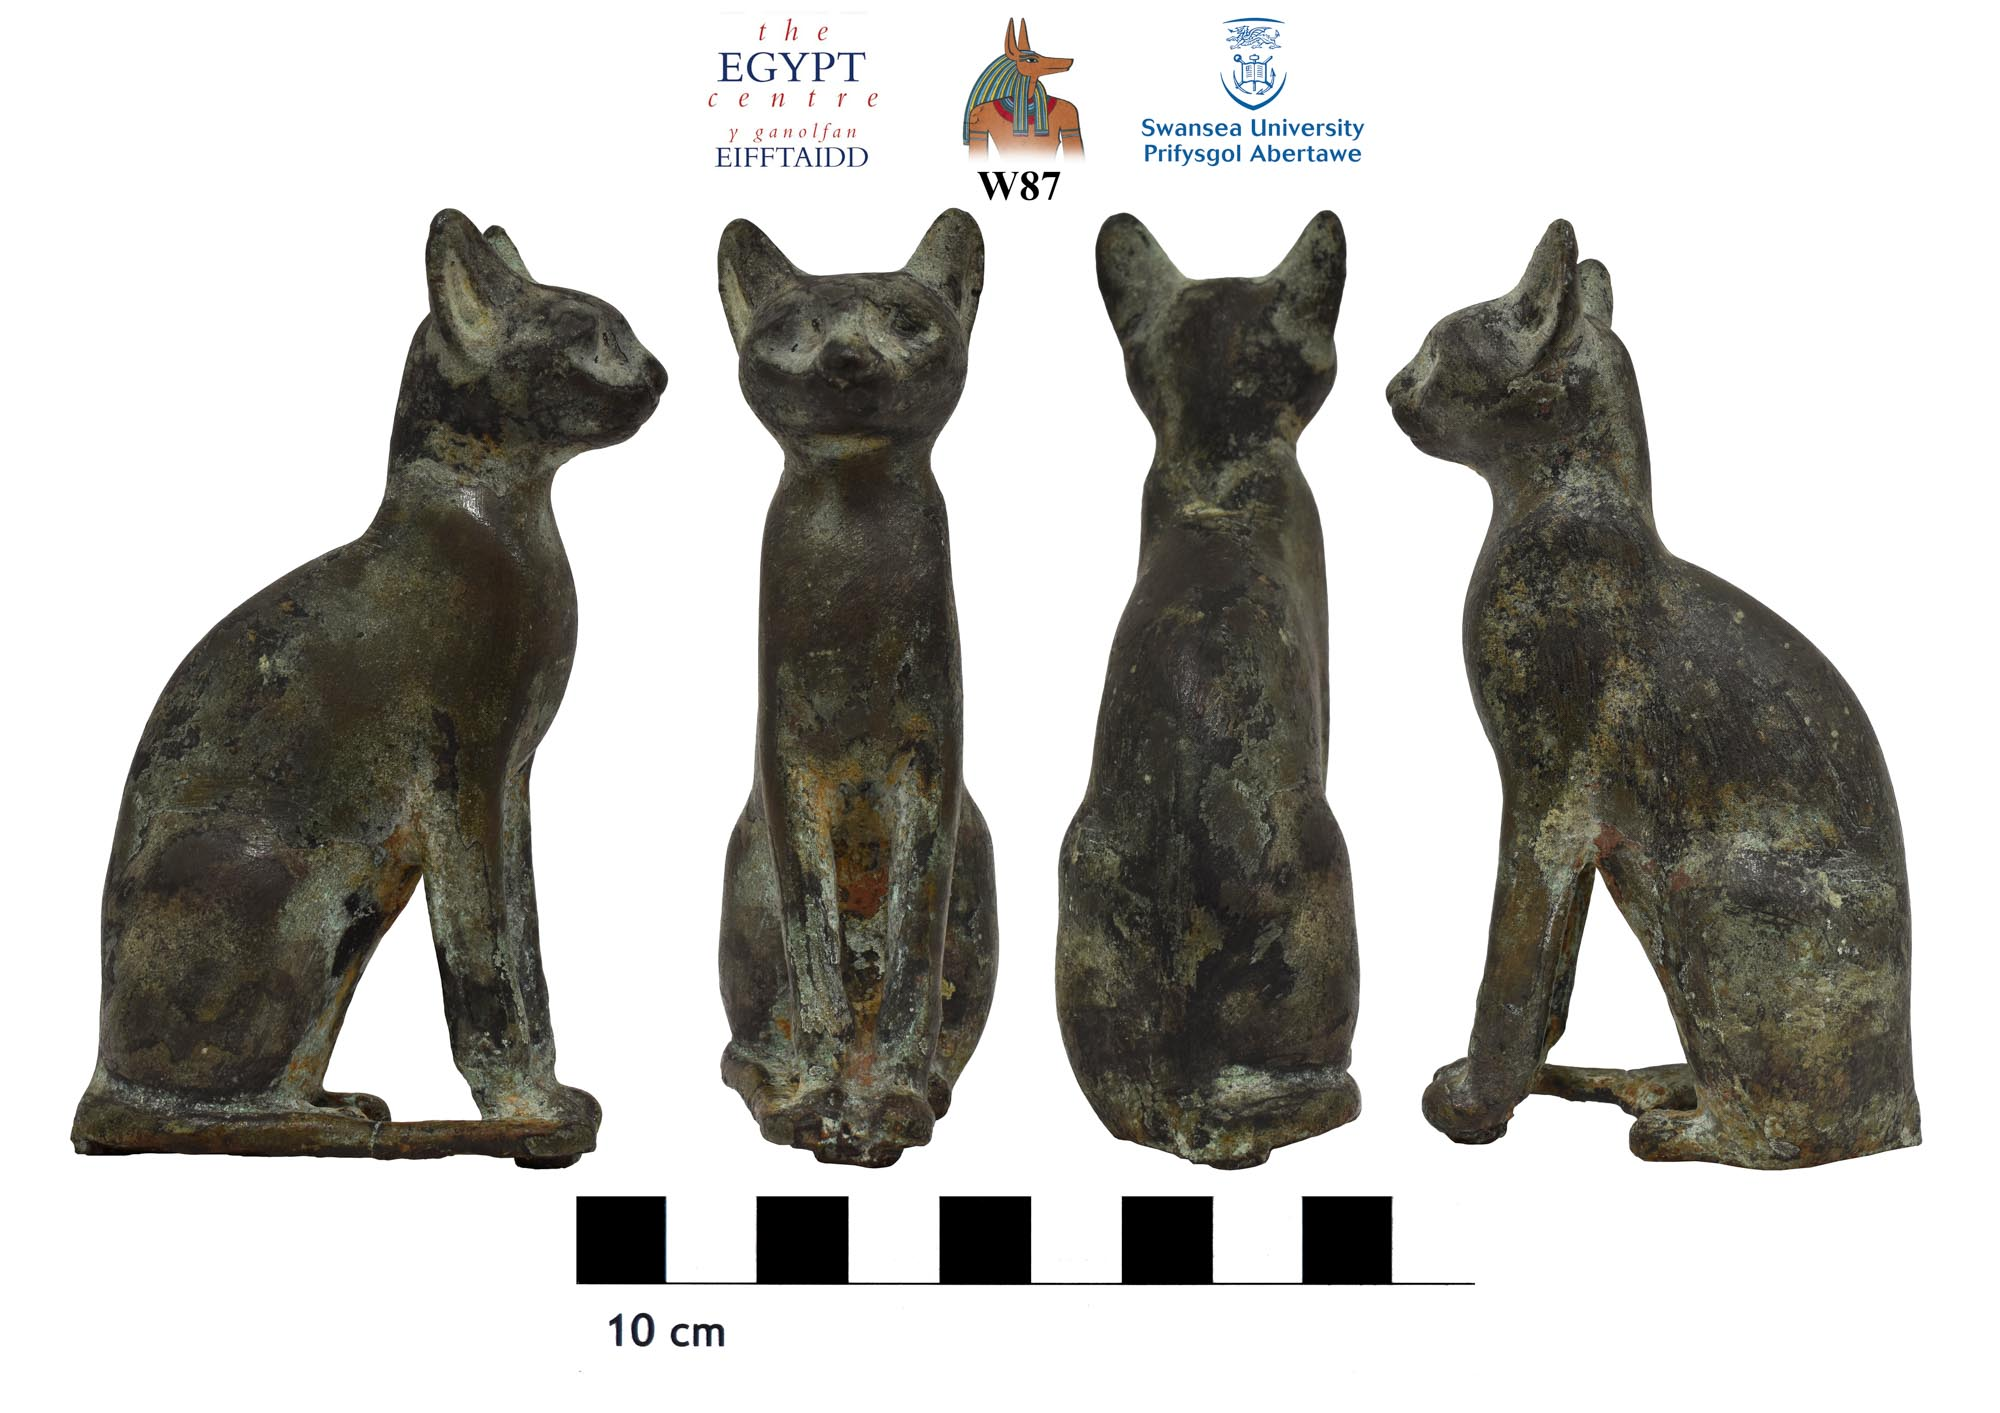 Image for: Statue of a cat